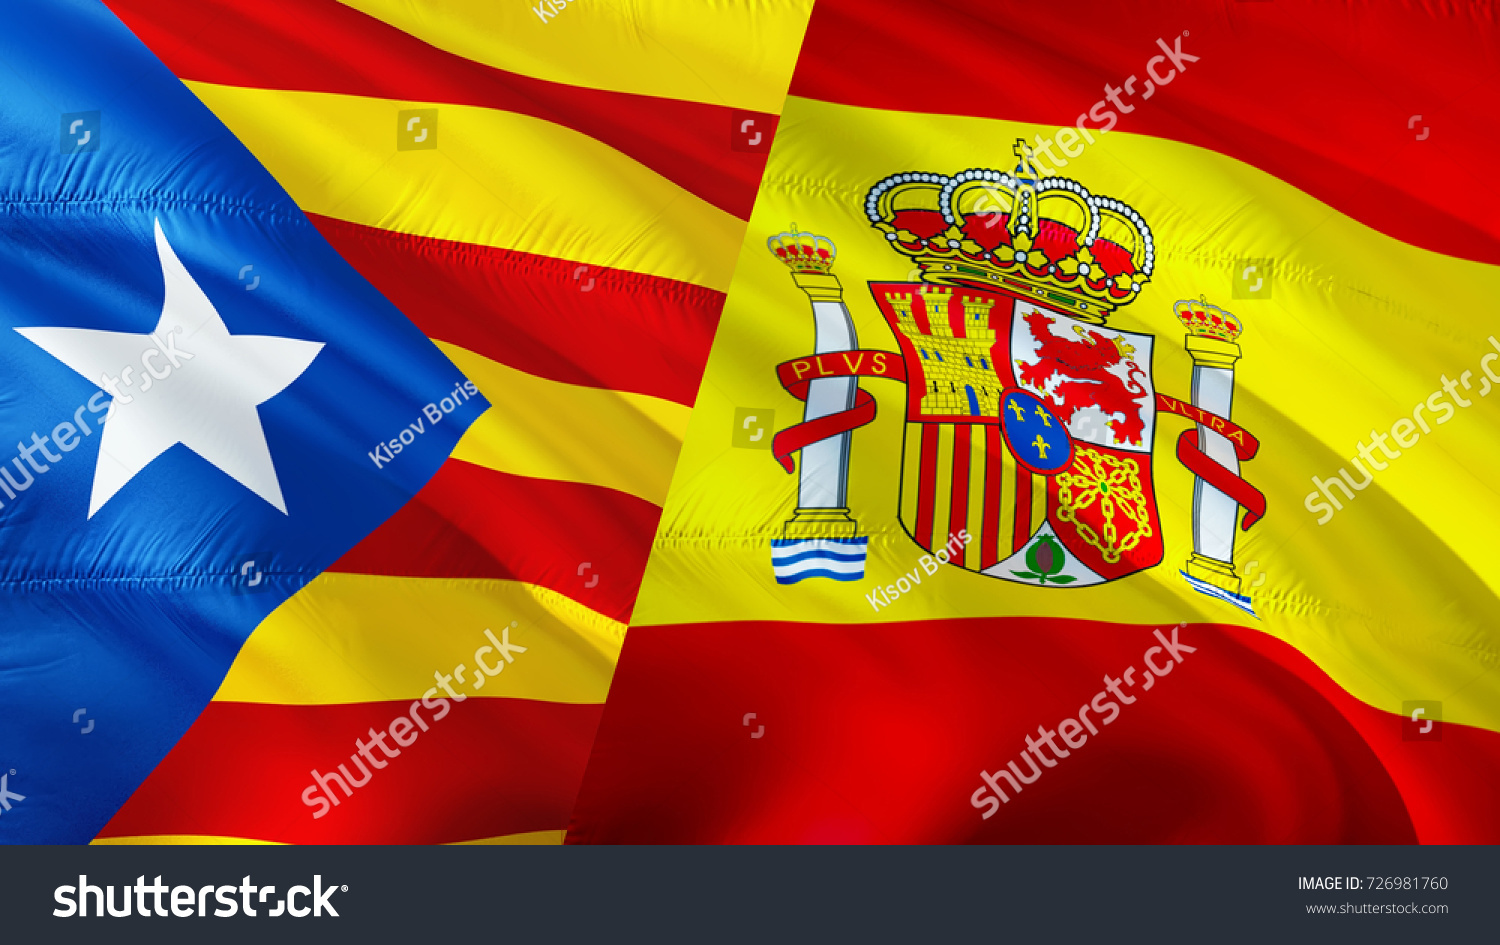 referendum catalonia spain flags concept waving stock illustration